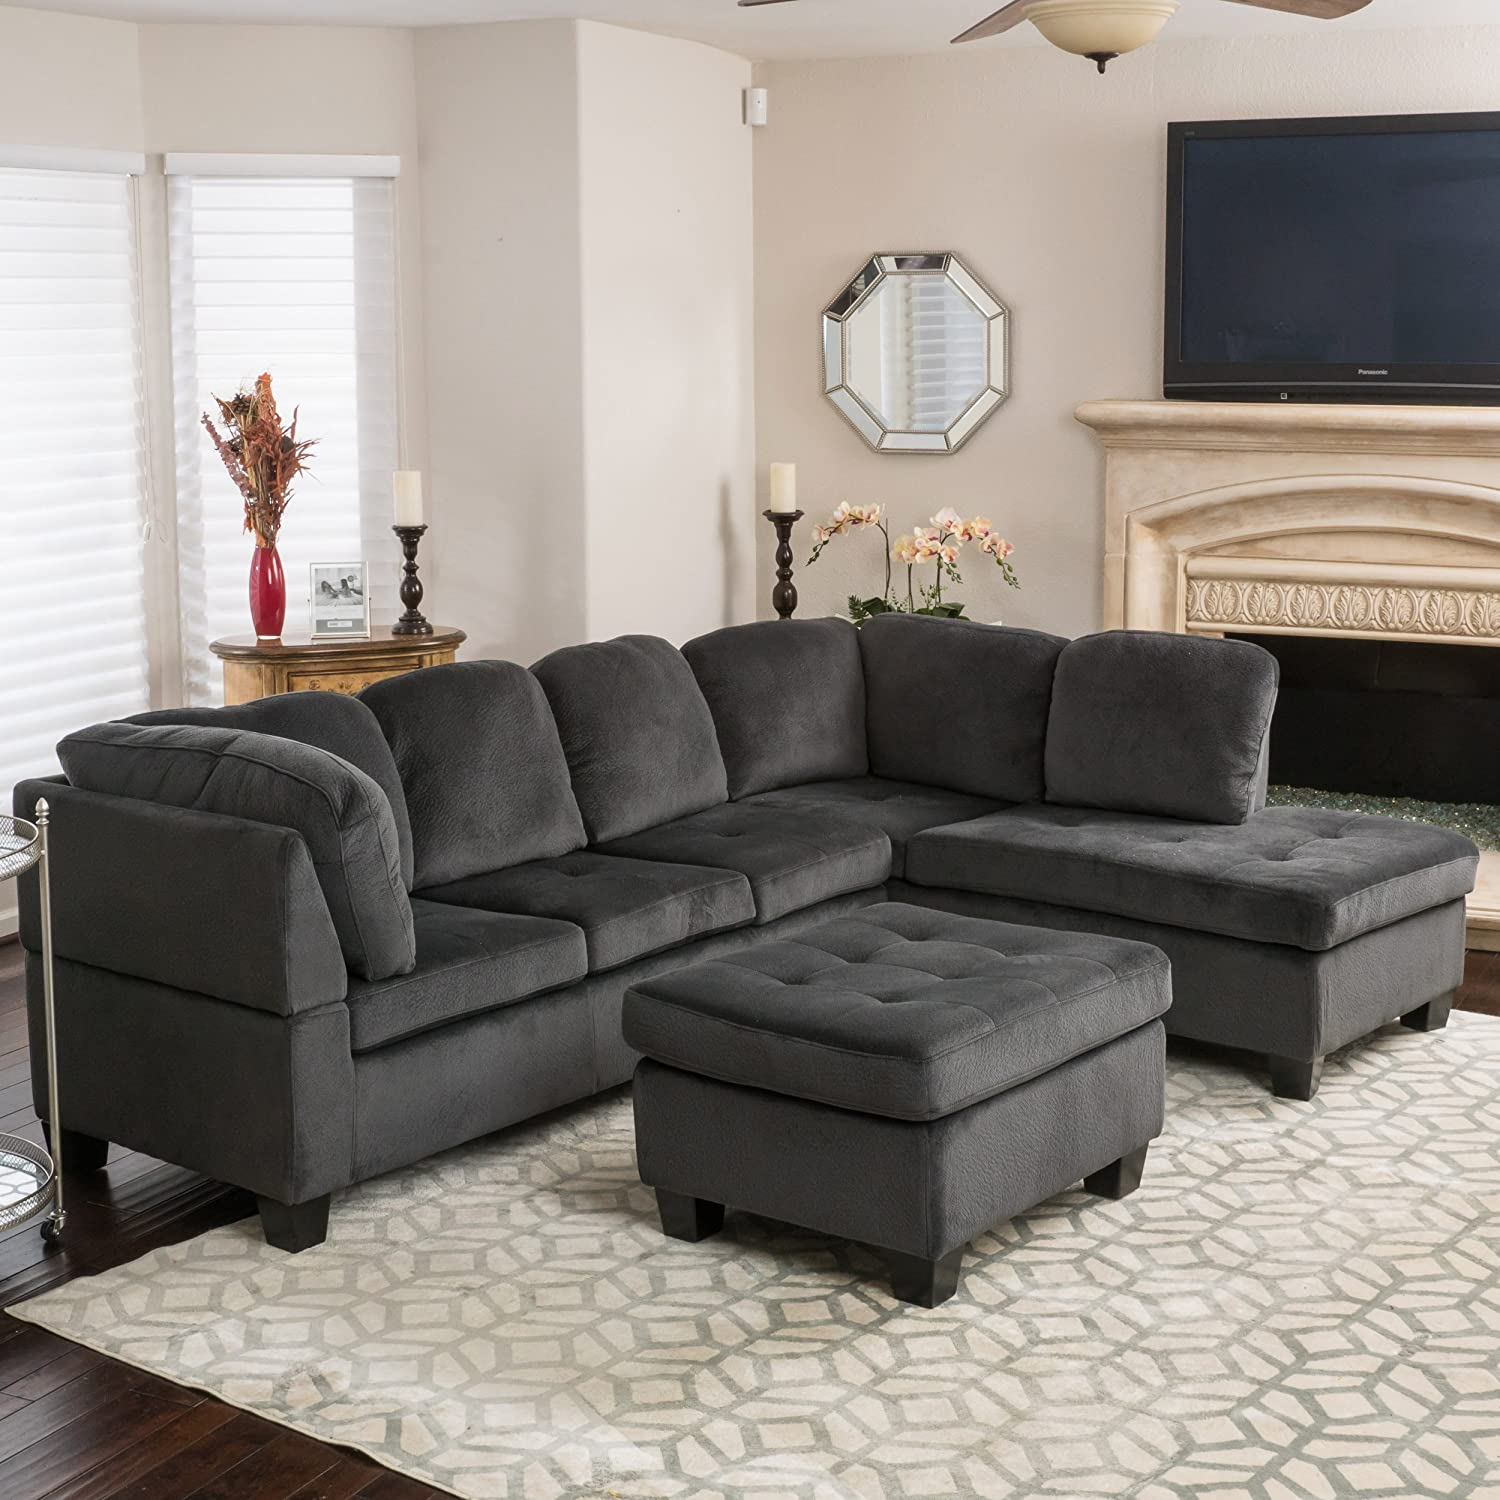 Amazon Gotham 3 piece Charcoal Fabric Sectional Sofa Set